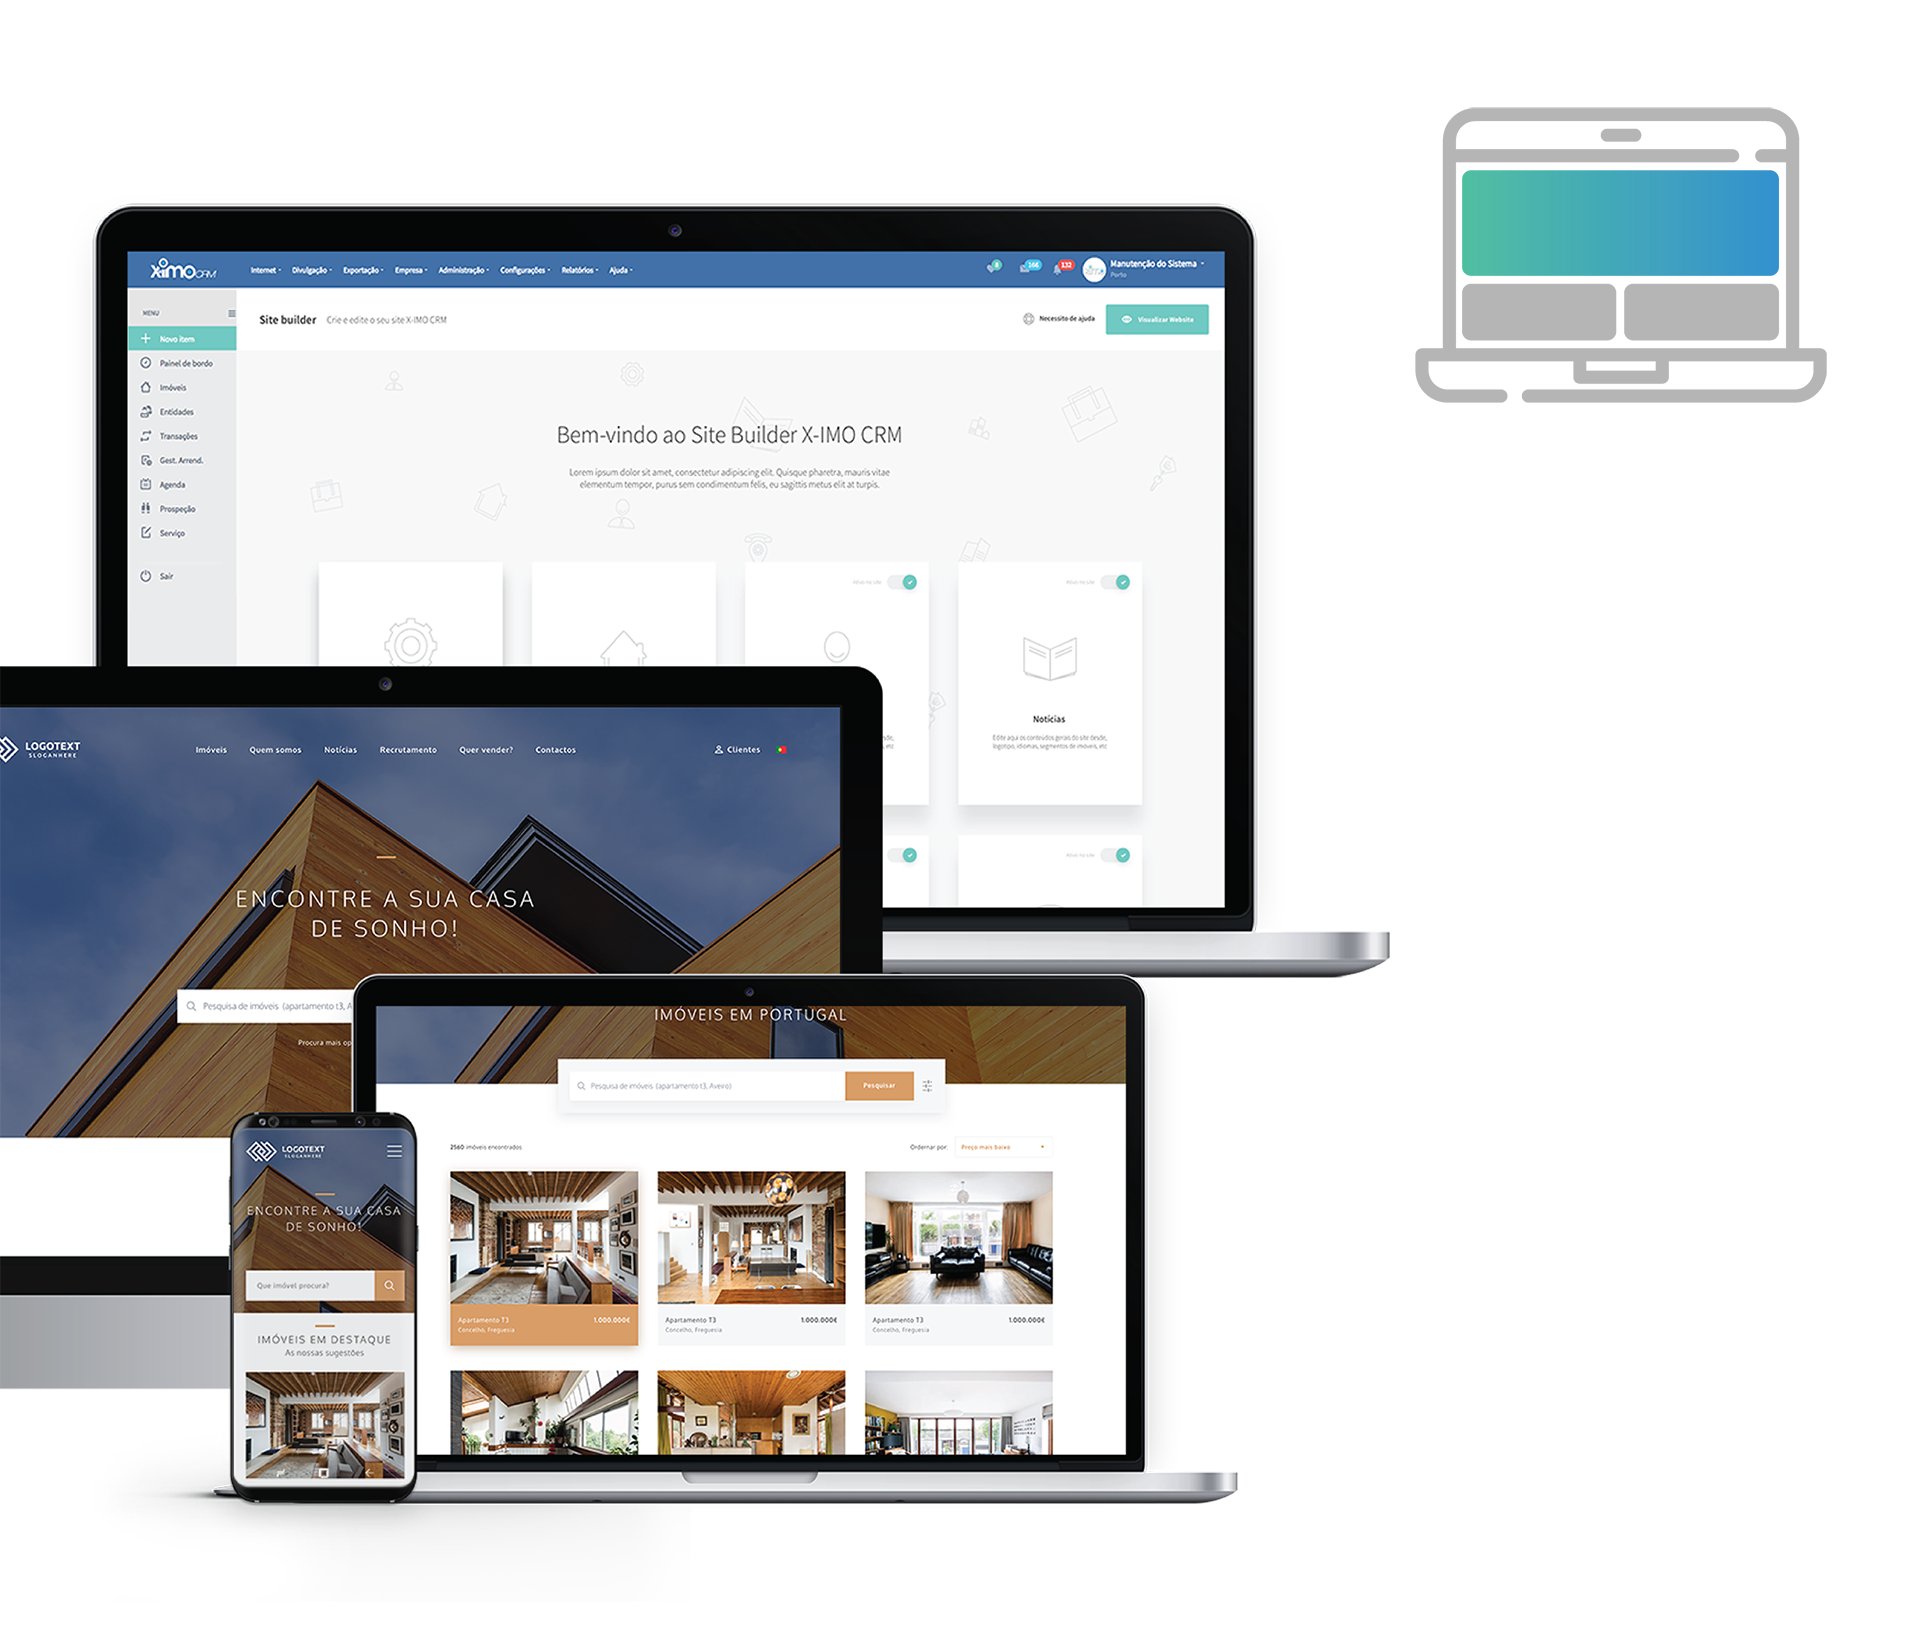 Site Builder X-IMO CRM